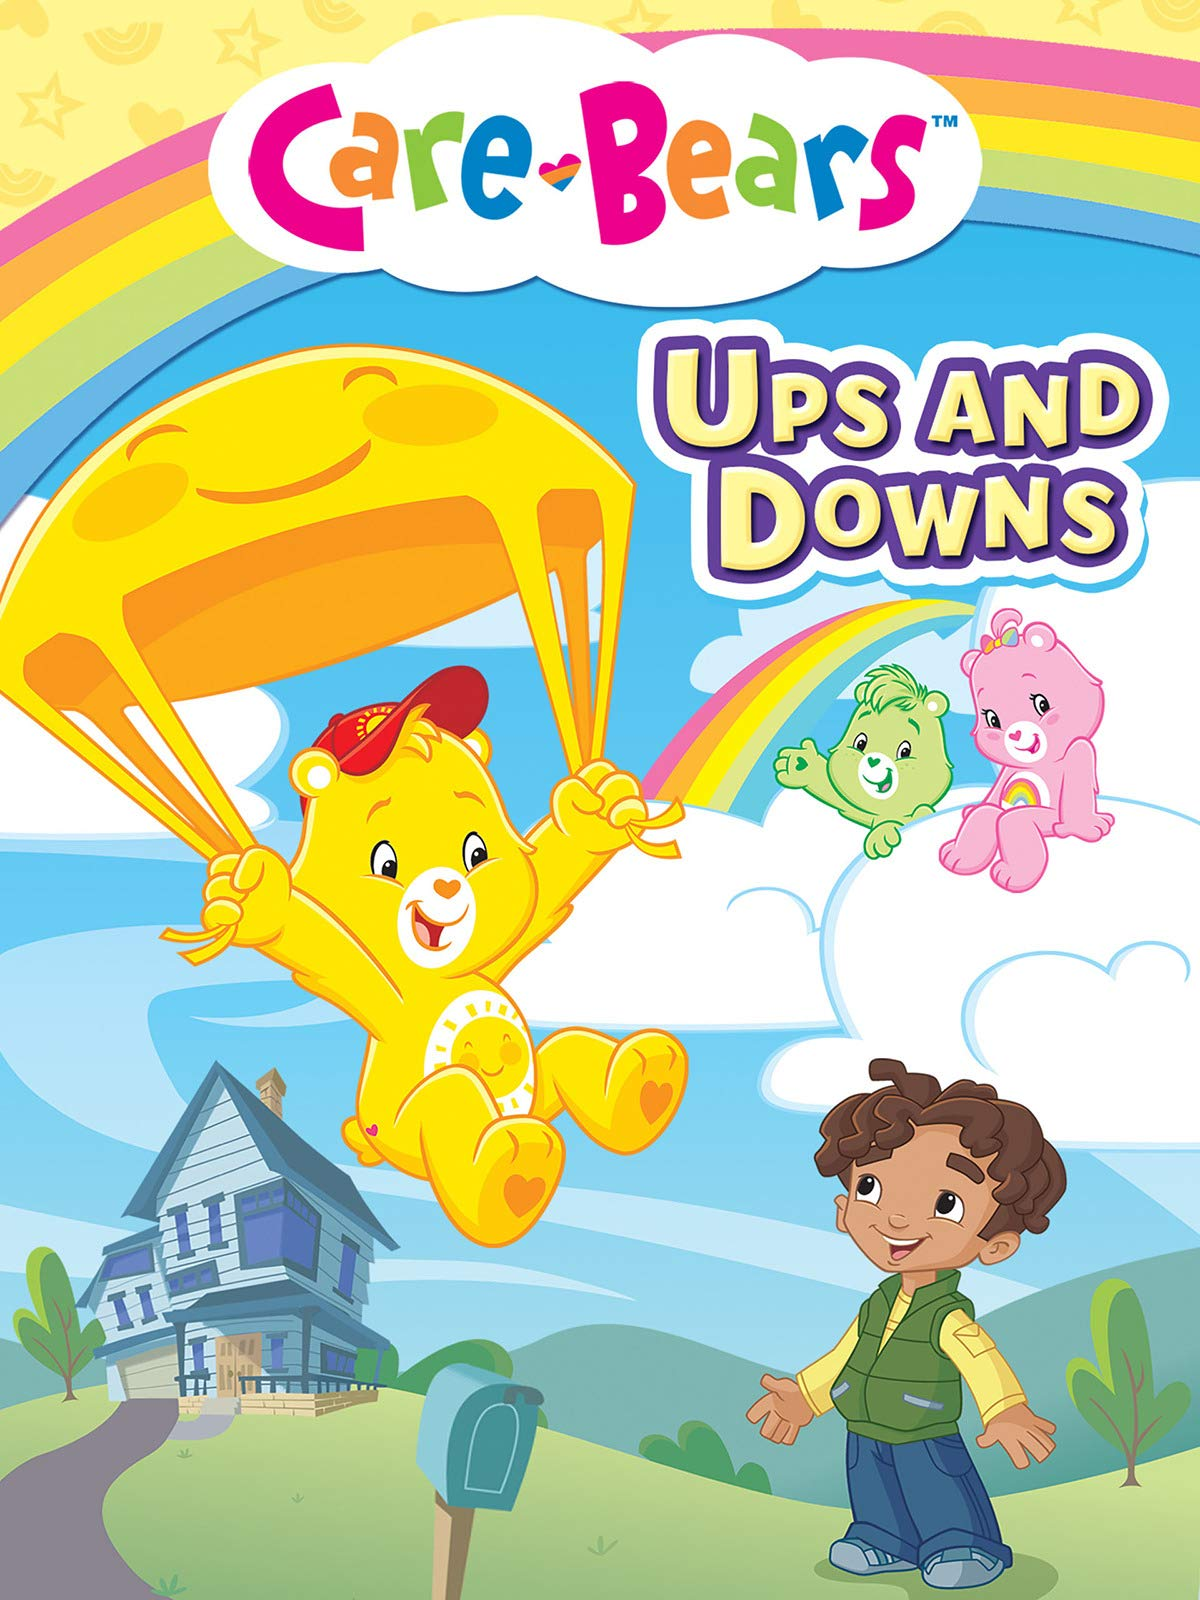 Care Bears: Ups and Downs on Amazon Prime Video UK